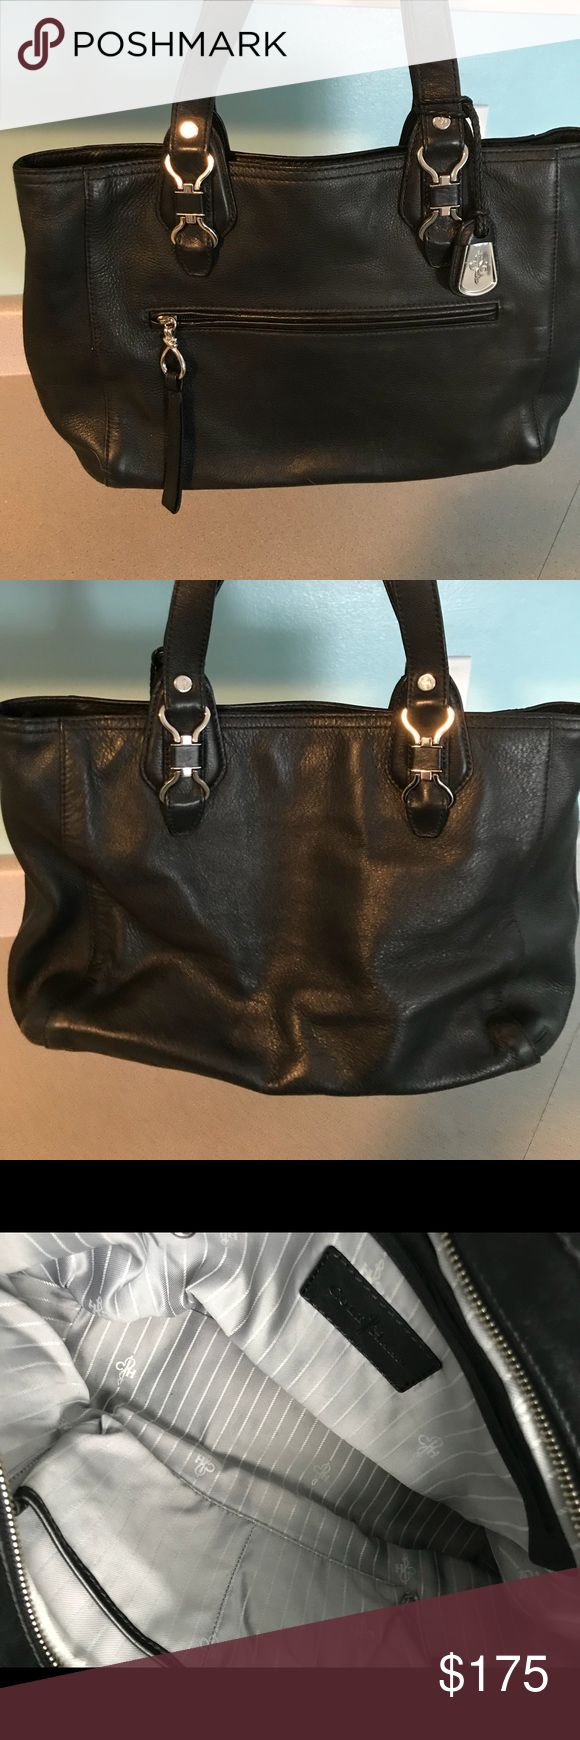 Cole Haan Kendra Tote! Kendra bag in perfect shape, hardly used.   Purchased at the outlet, still have the tag and the dust bag to go with it. Cole Haan Bags Shoulder Bags